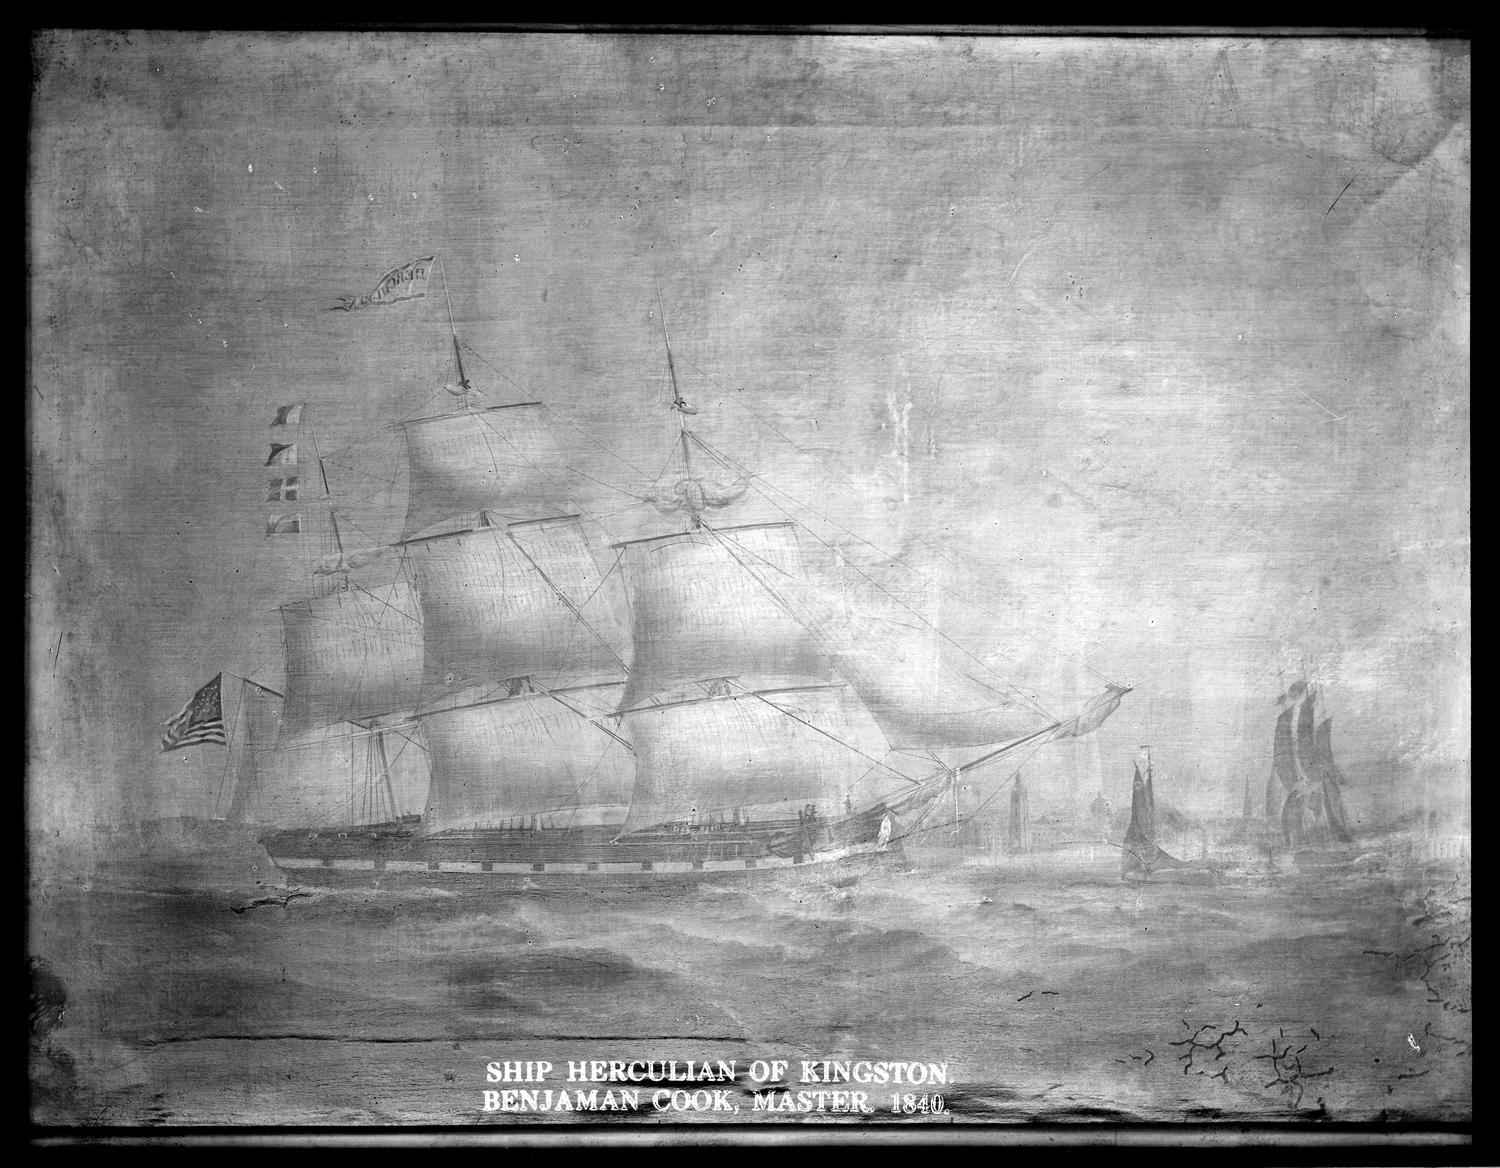 Ship Herculean of Kingston, Benjamin Cook, Master, 1840